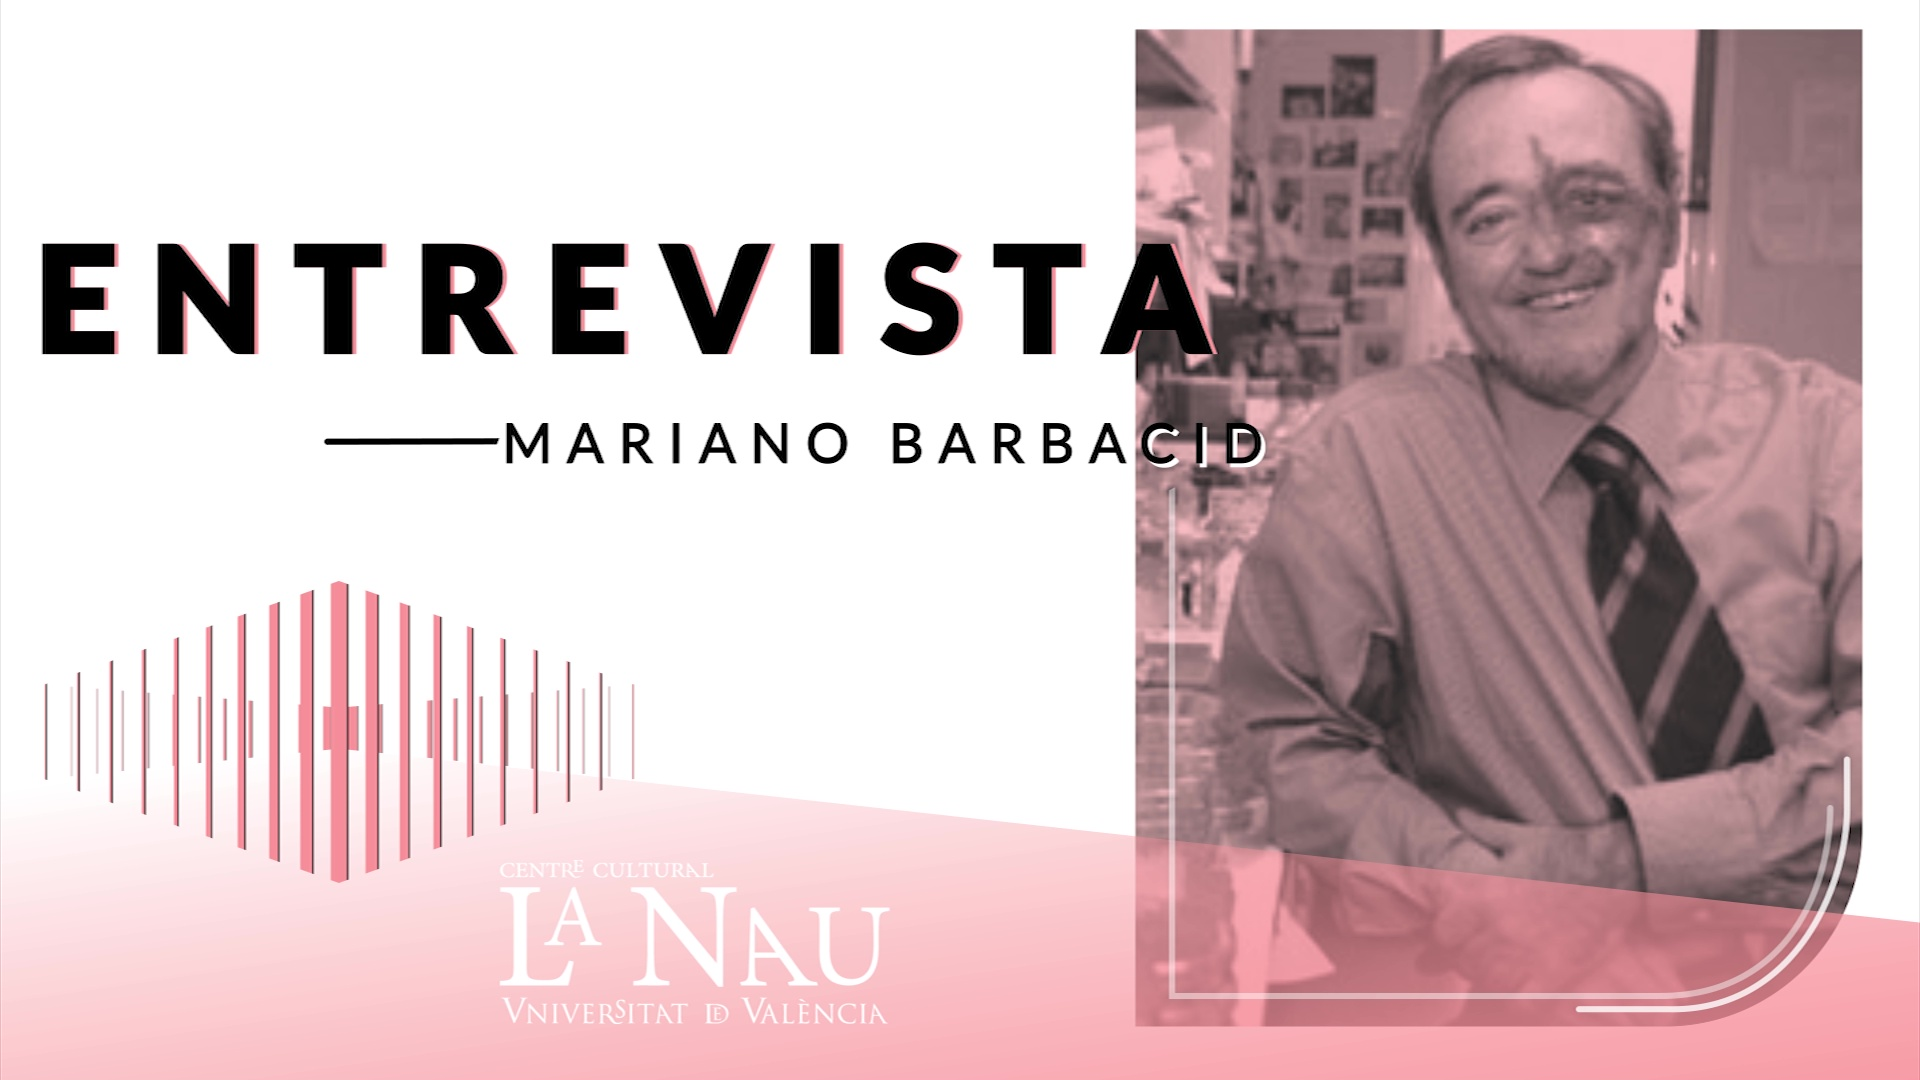 Image of the cover of the video;Entrevista a La Nau. Mariano Barbacid.